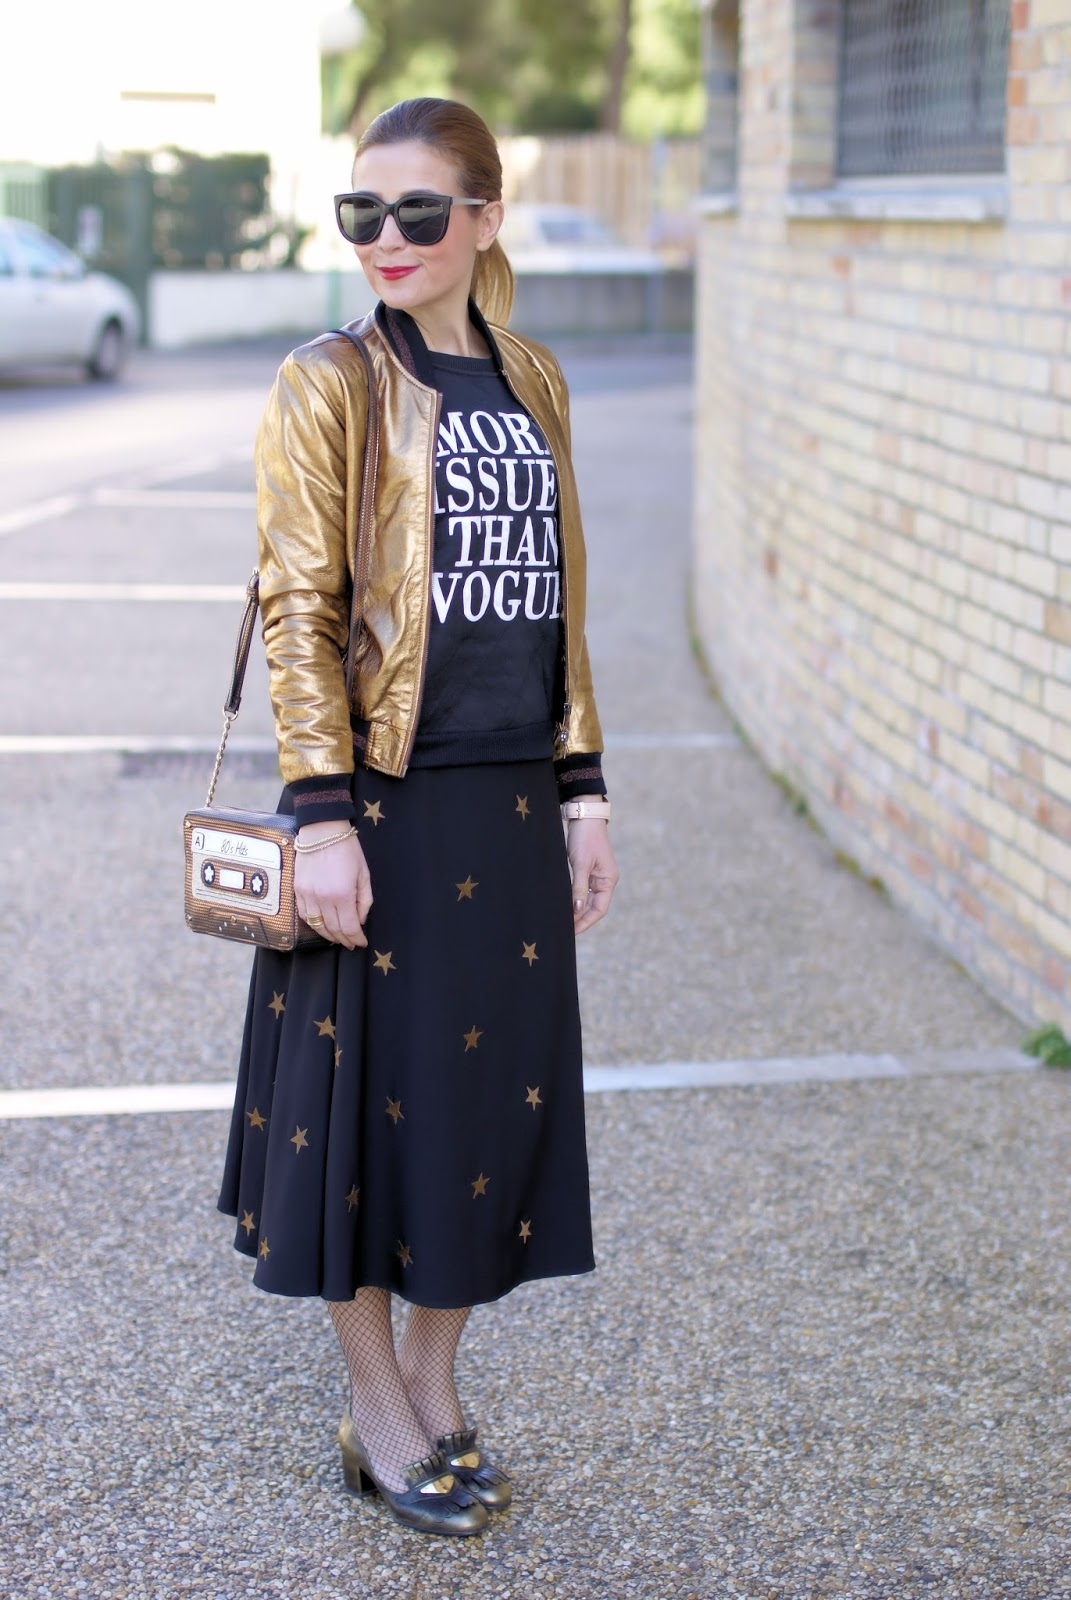 More issues than Vogue fashion outfit on Fashion and Cookies fashion blog, fashion blogger styl